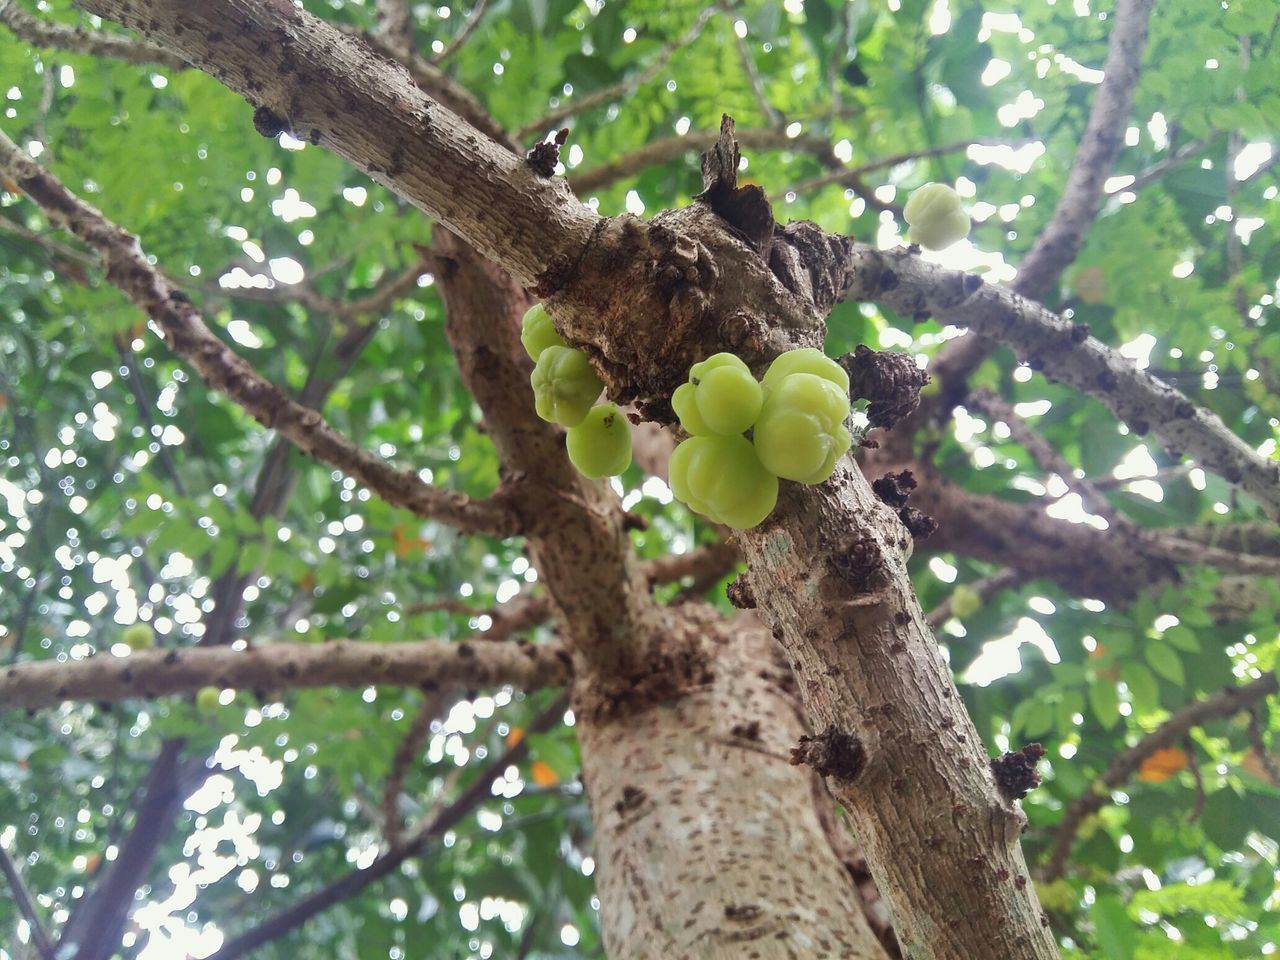 Star gooseberry. Tree Nature Branch Growth Green Color No People Fruit Beauty In Nature Star Gooseberry